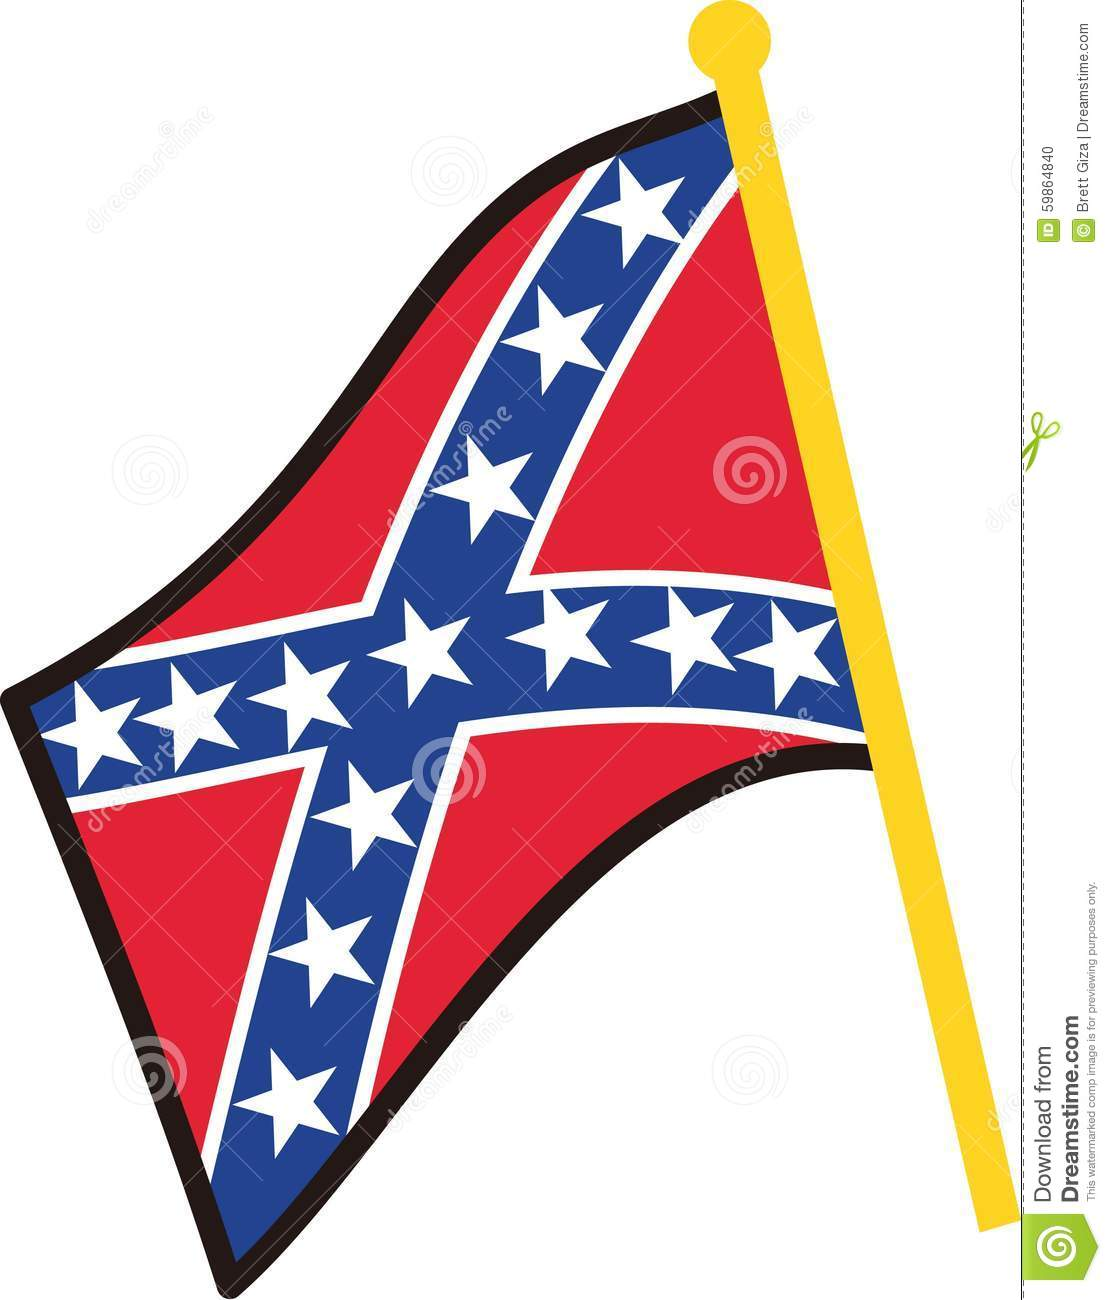 Stock Quote Southern Company: Stock Photo: Confederate Flag. Image: 59864840